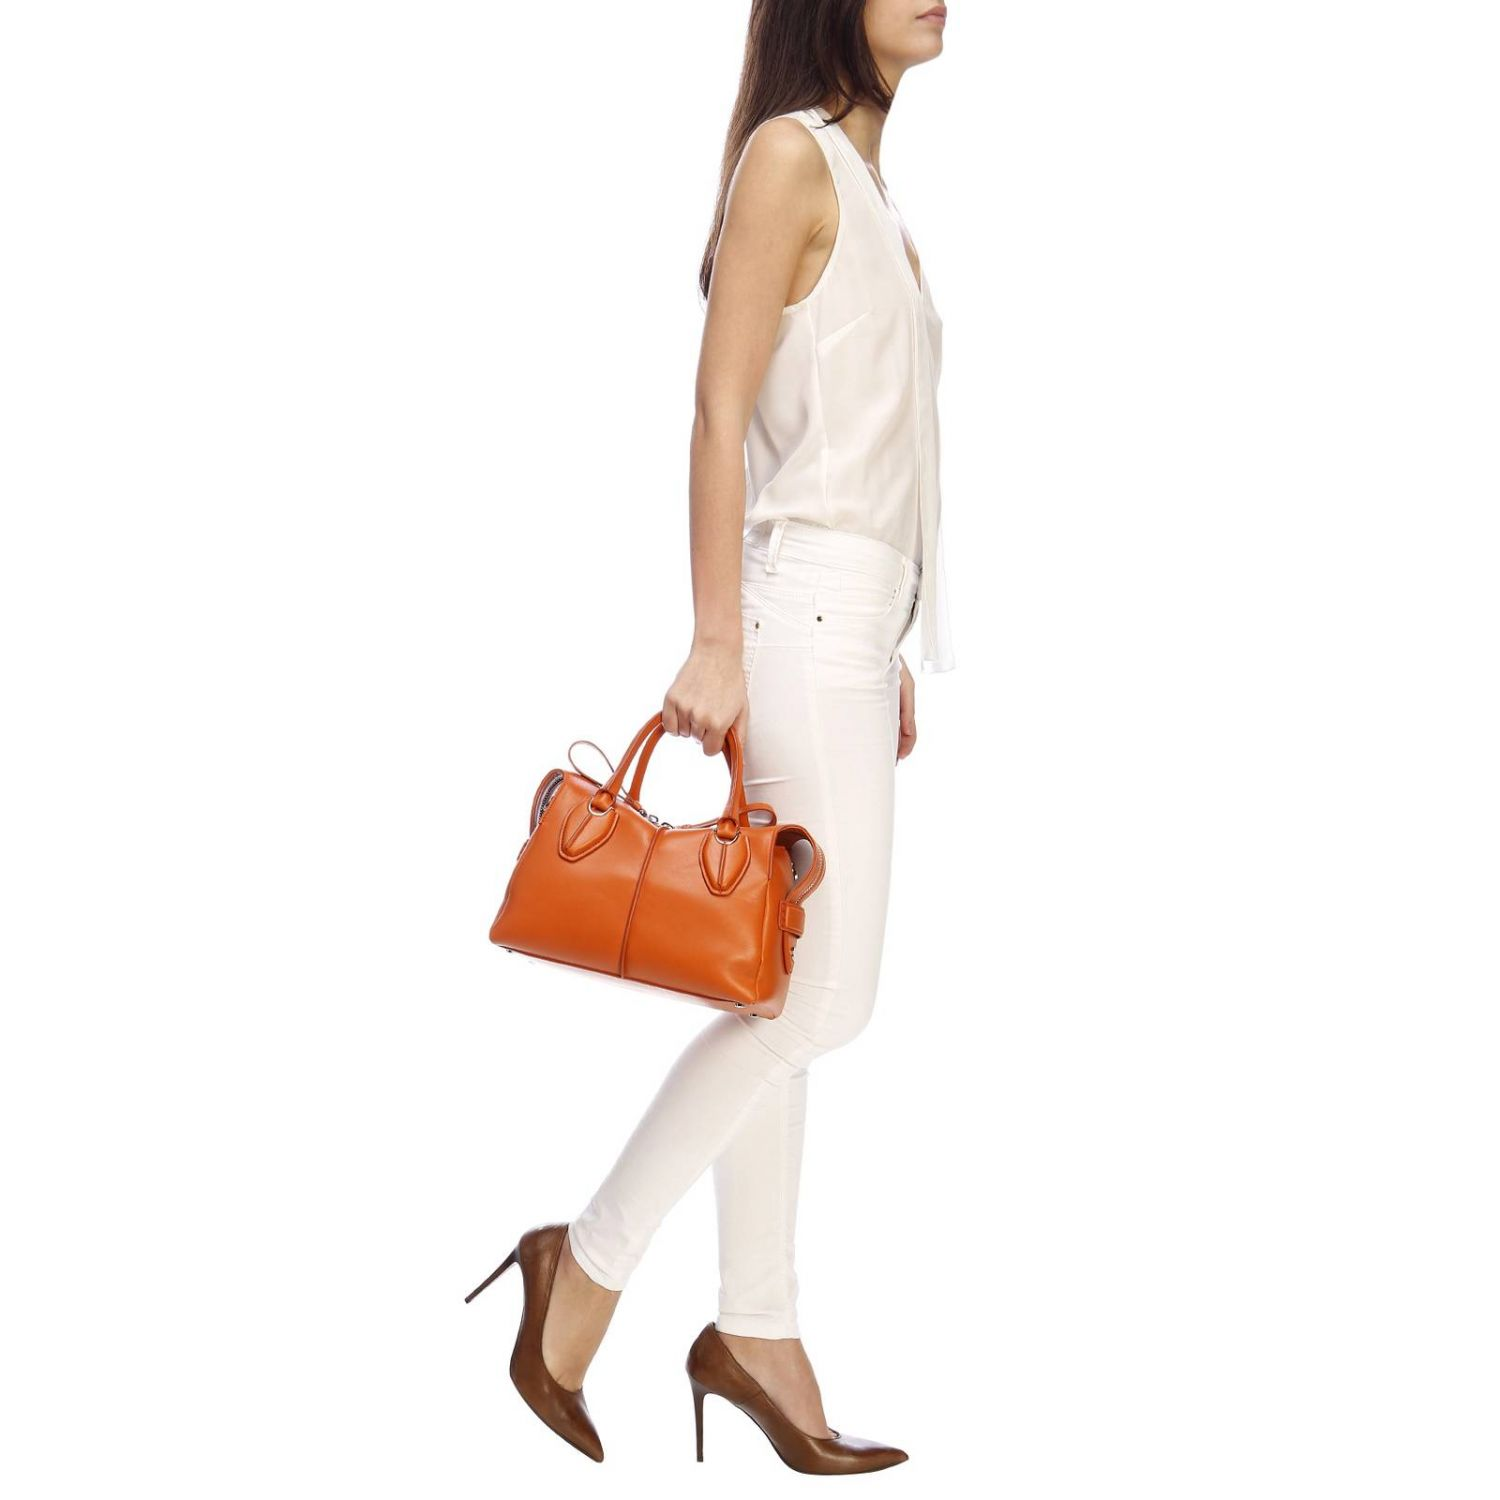 Handbag Tods: Shoulder bag women Tod's orange 2